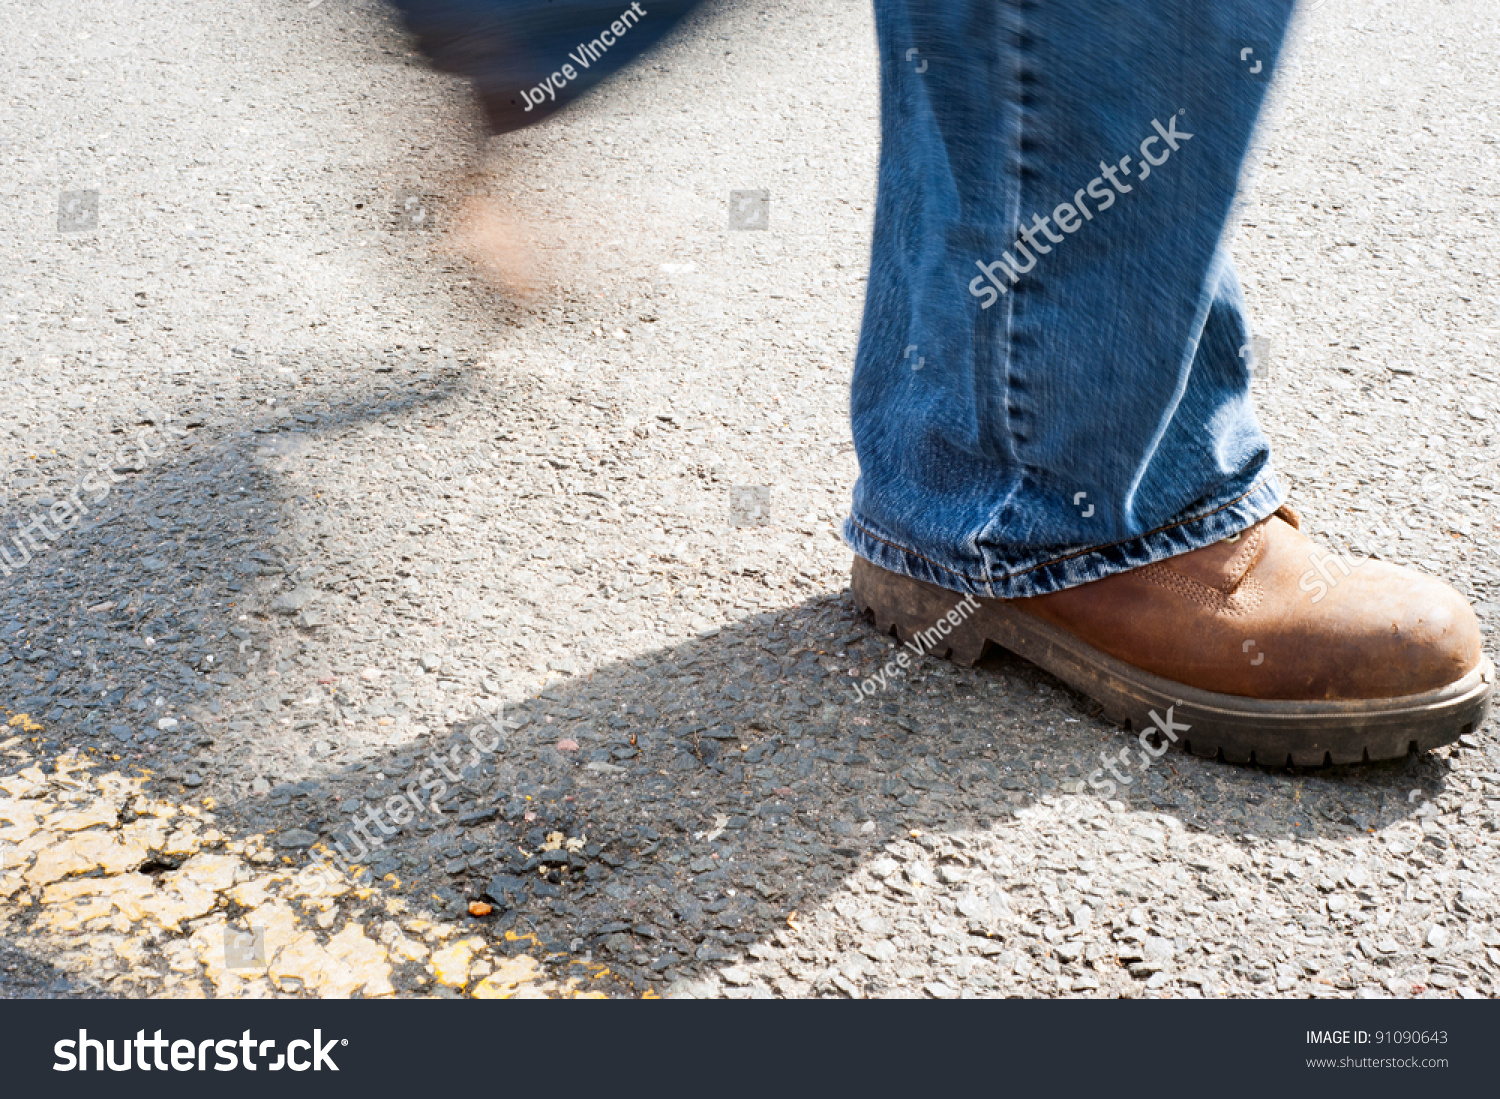 a walking on concrete with work boots on stockfoto